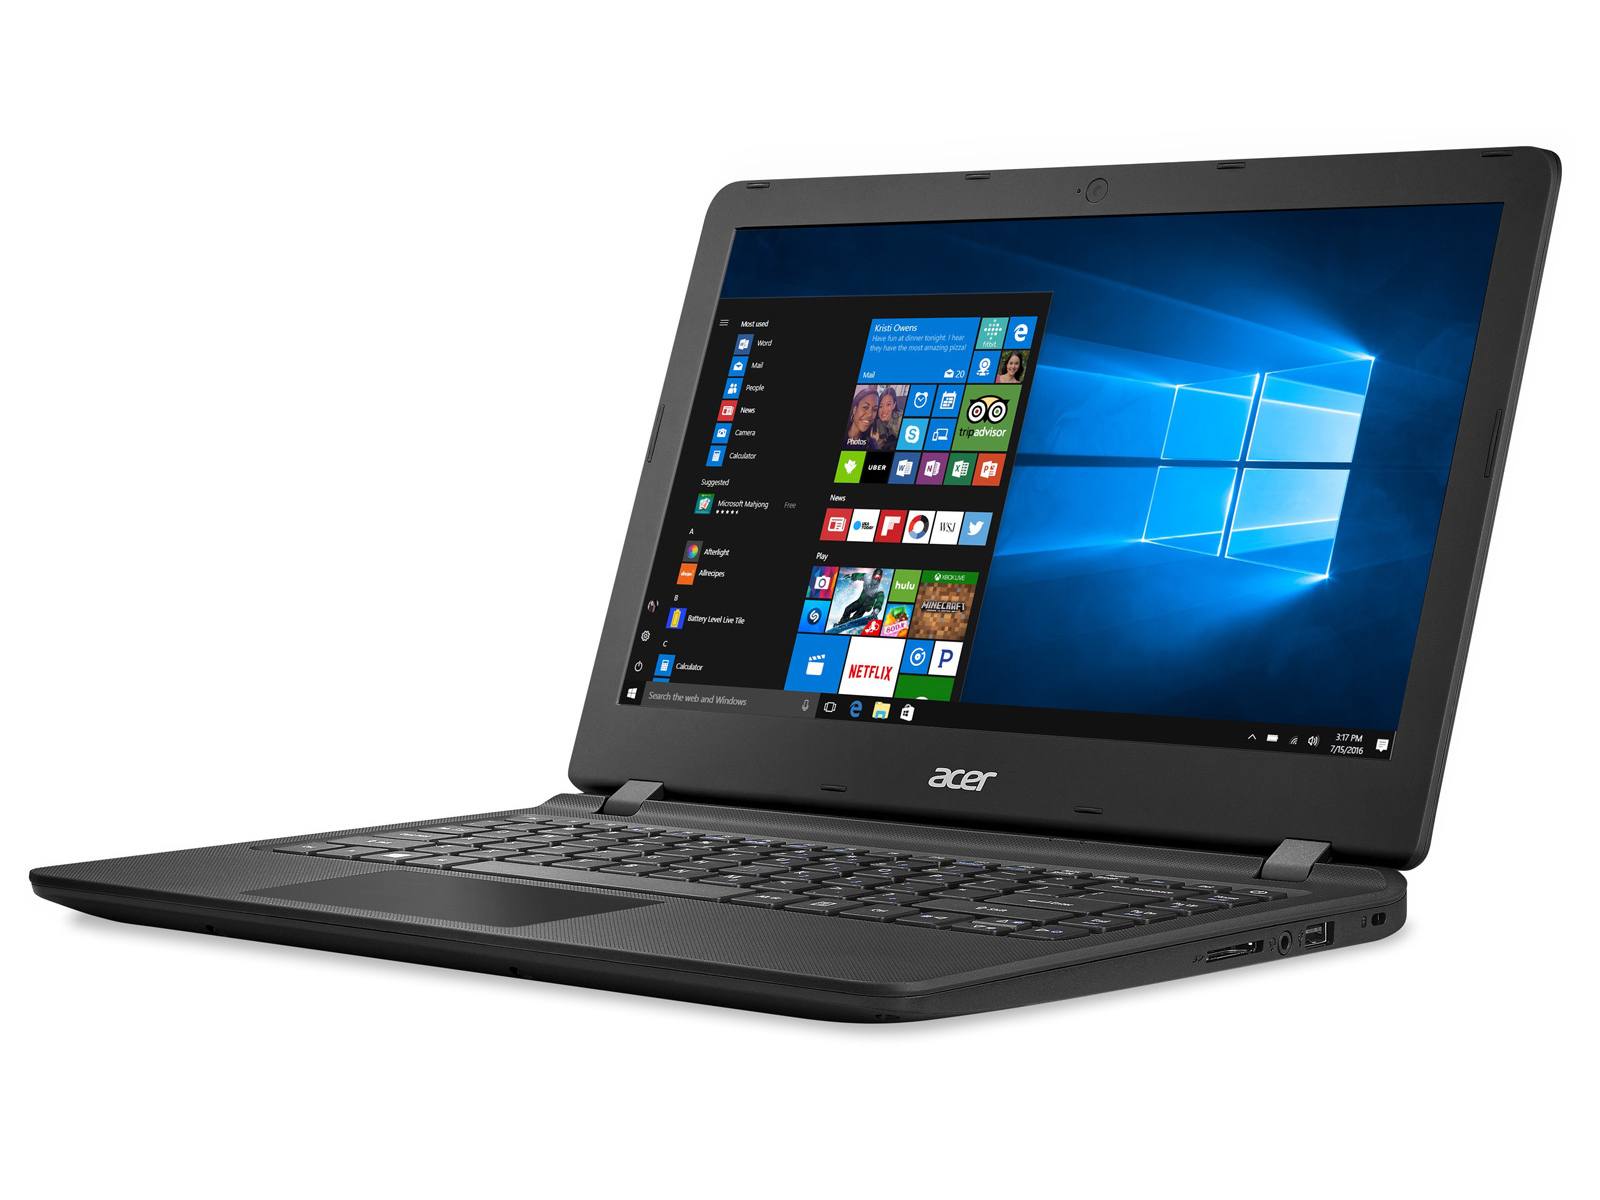 Acer Aspire 1640 HD Audio Drivers for Windows 10